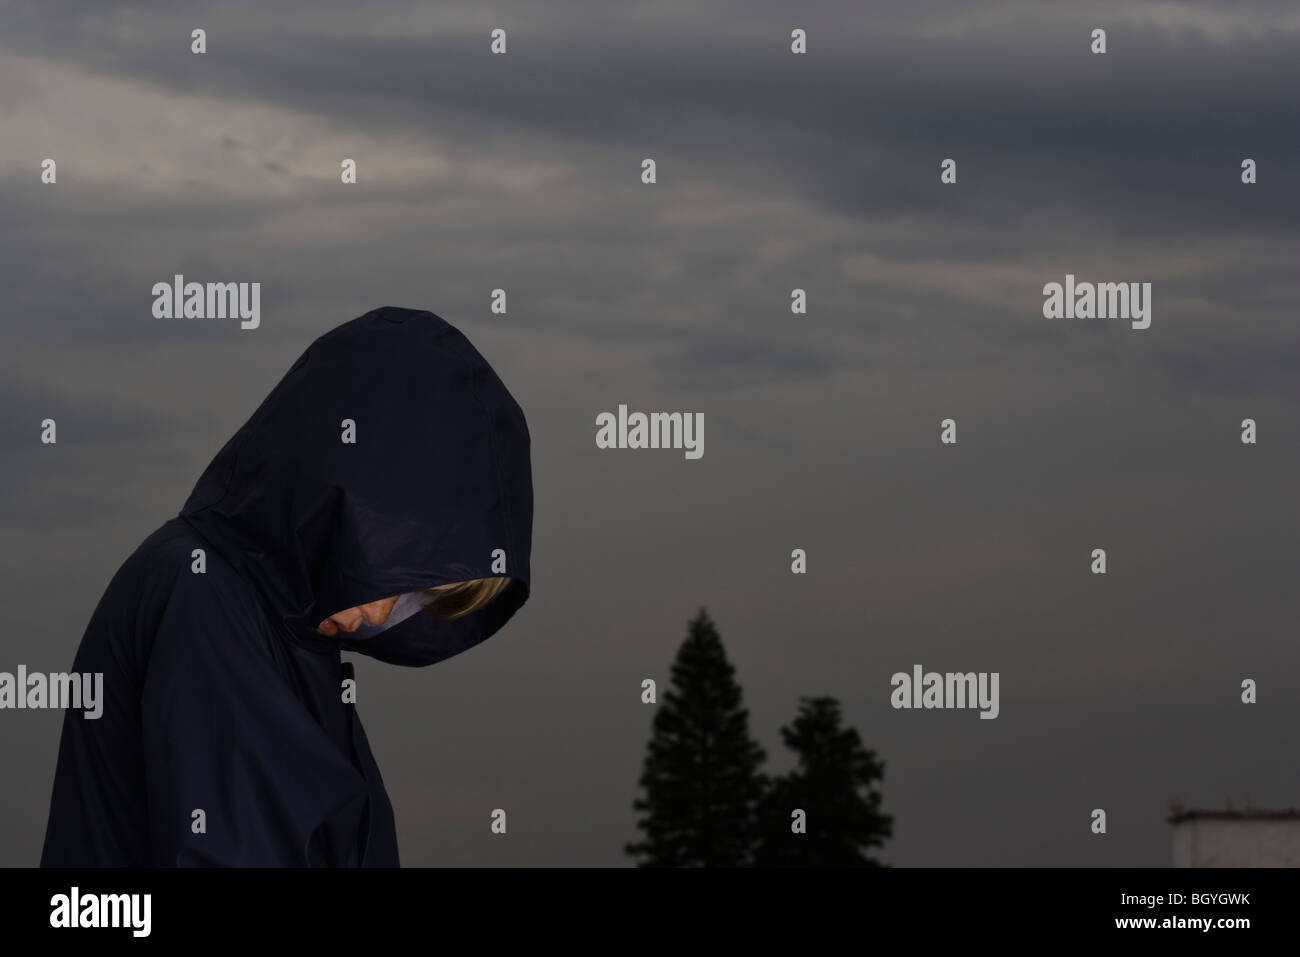 Boy with head down, face obscured by jacket hood - Stock Image